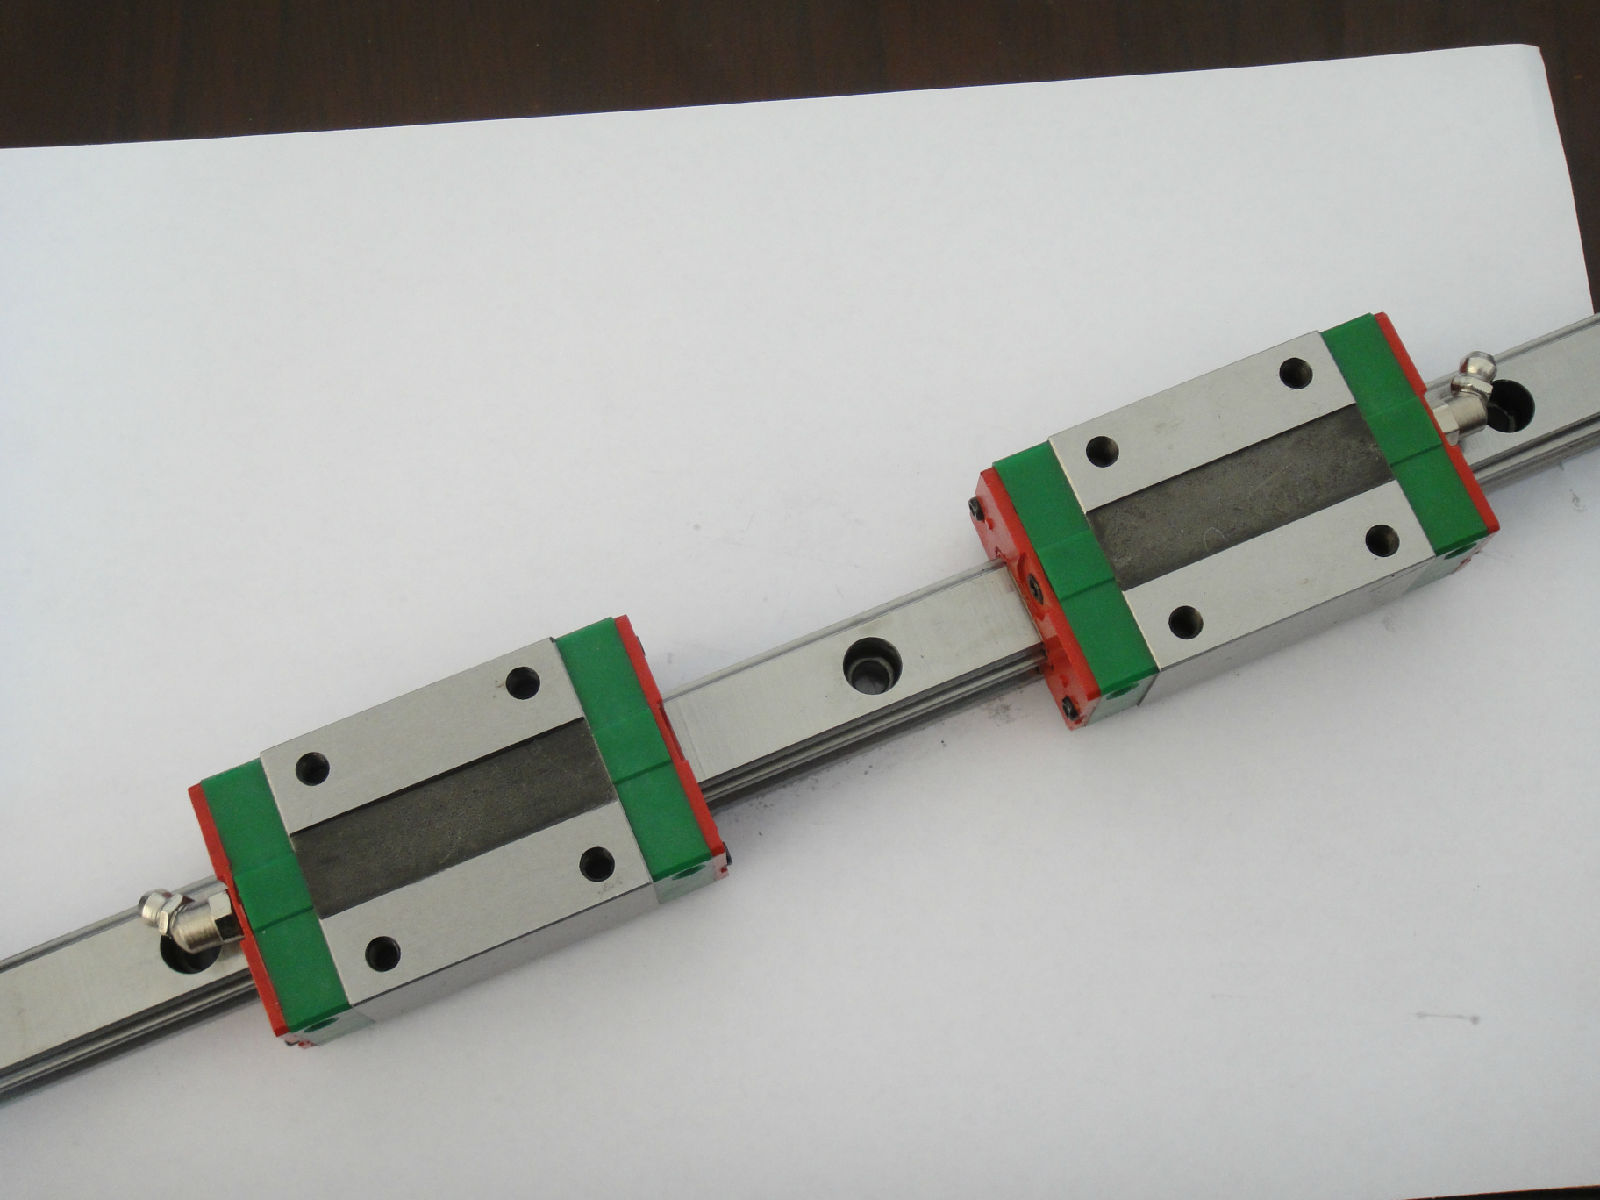 100% genuine HIWIN linear guide HGR20-1700MM block for Taiwan 100% genuine hiwin linear guide hgr20 2700mm block for taiwan